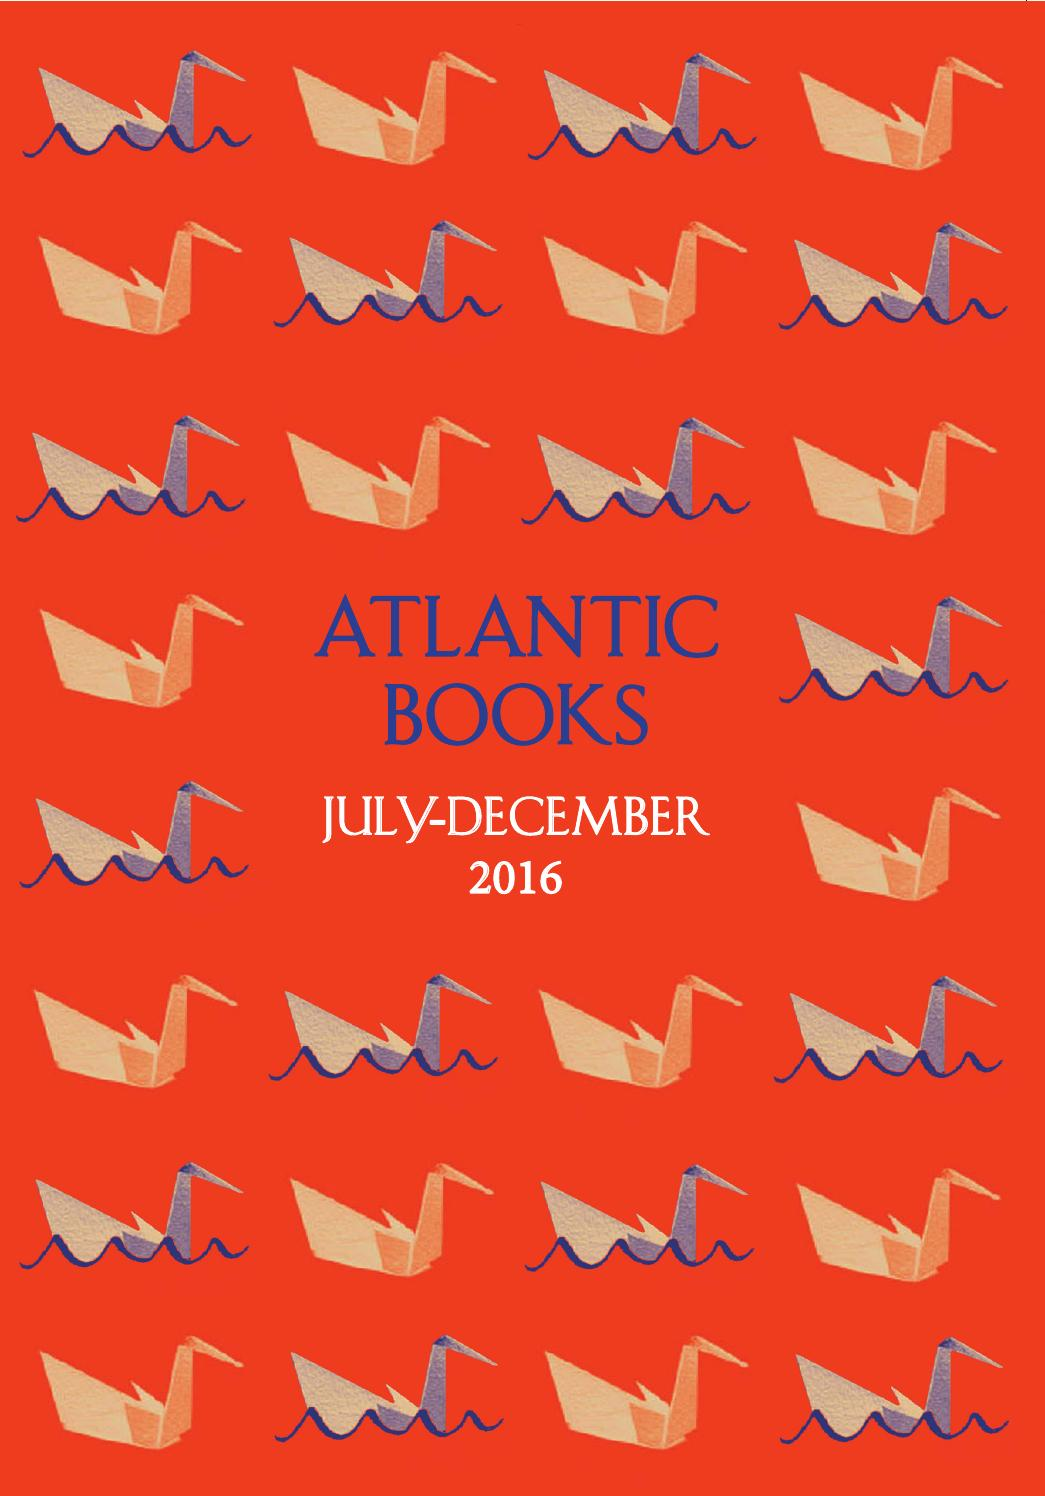 atlantic books july december 2016 catalogue by atlantic. Black Bedroom Furniture Sets. Home Design Ideas